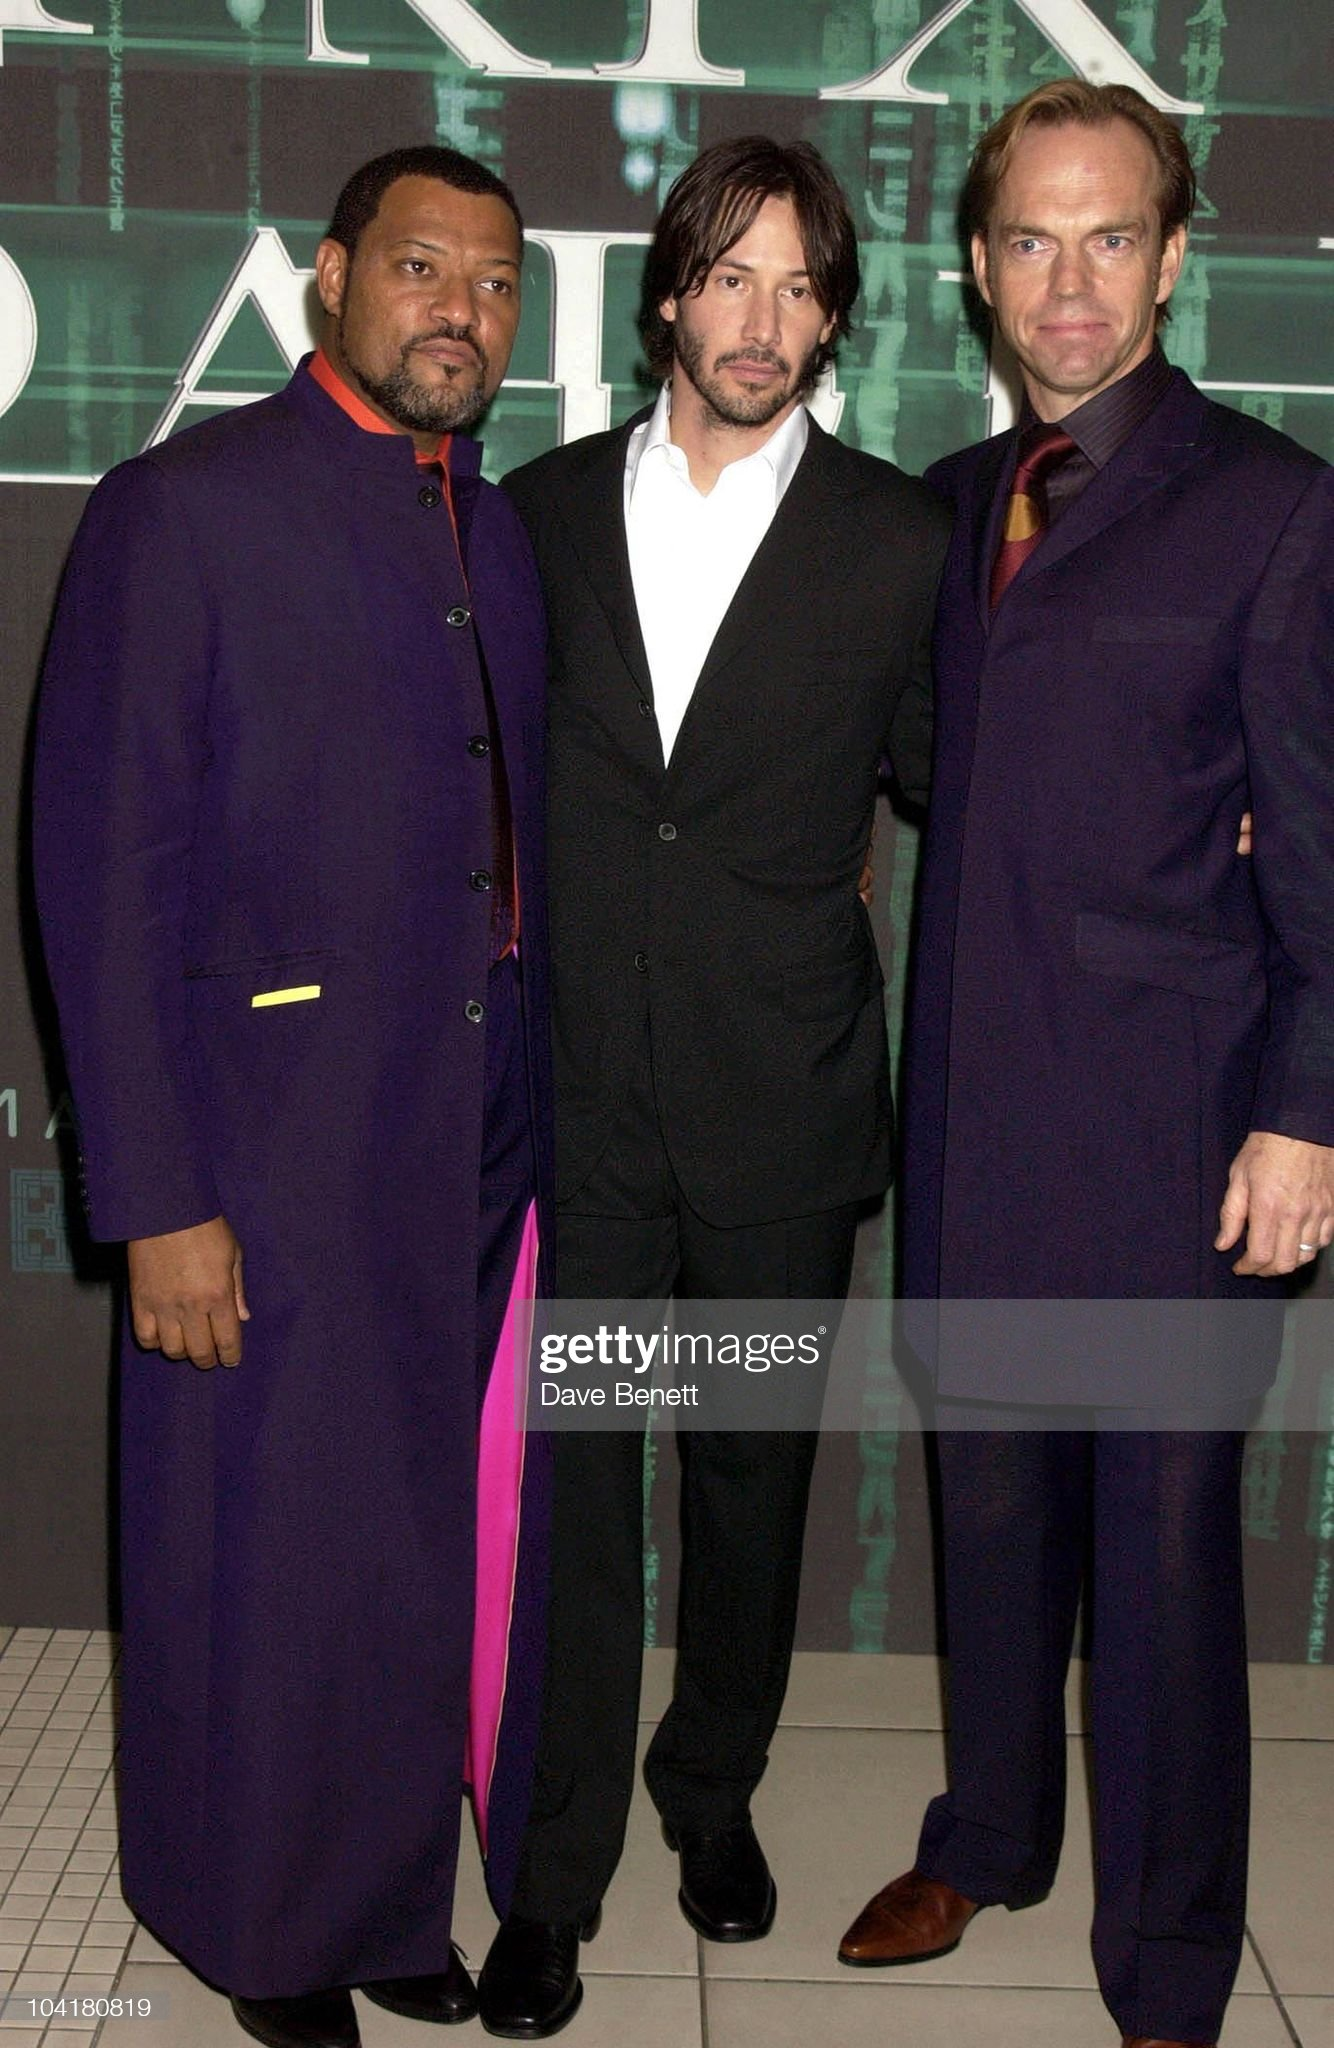 ¿Cuánto mide Laurence Fishburne? - Real height Laurence-fishburne-keanu-reeves-and-hugo-weaving-the-matrix-reloaded-picture-id104180819?s=2048x2048